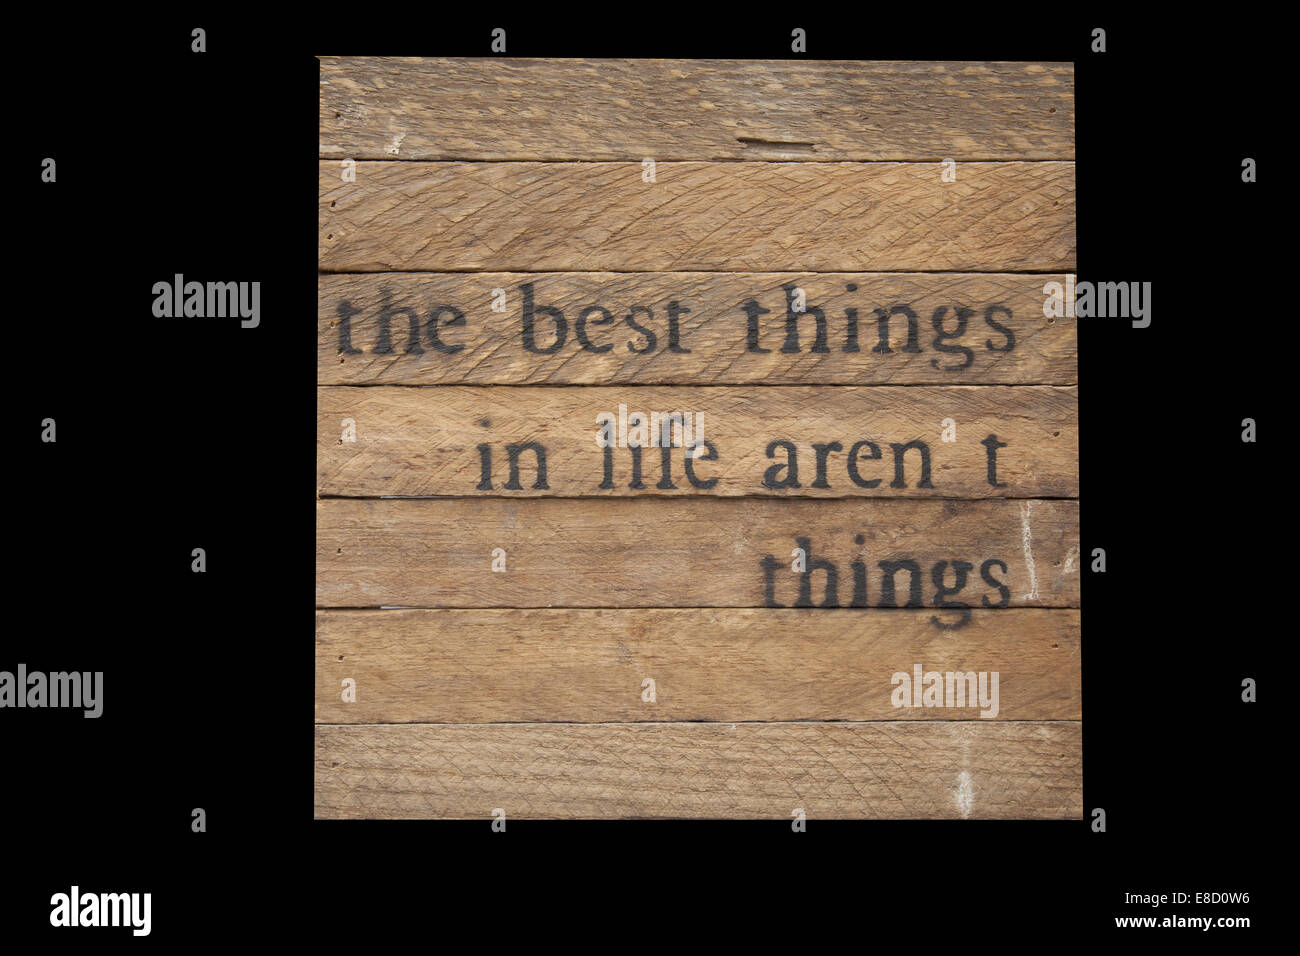 sign the best things in life aren't things on wood - Stock Image